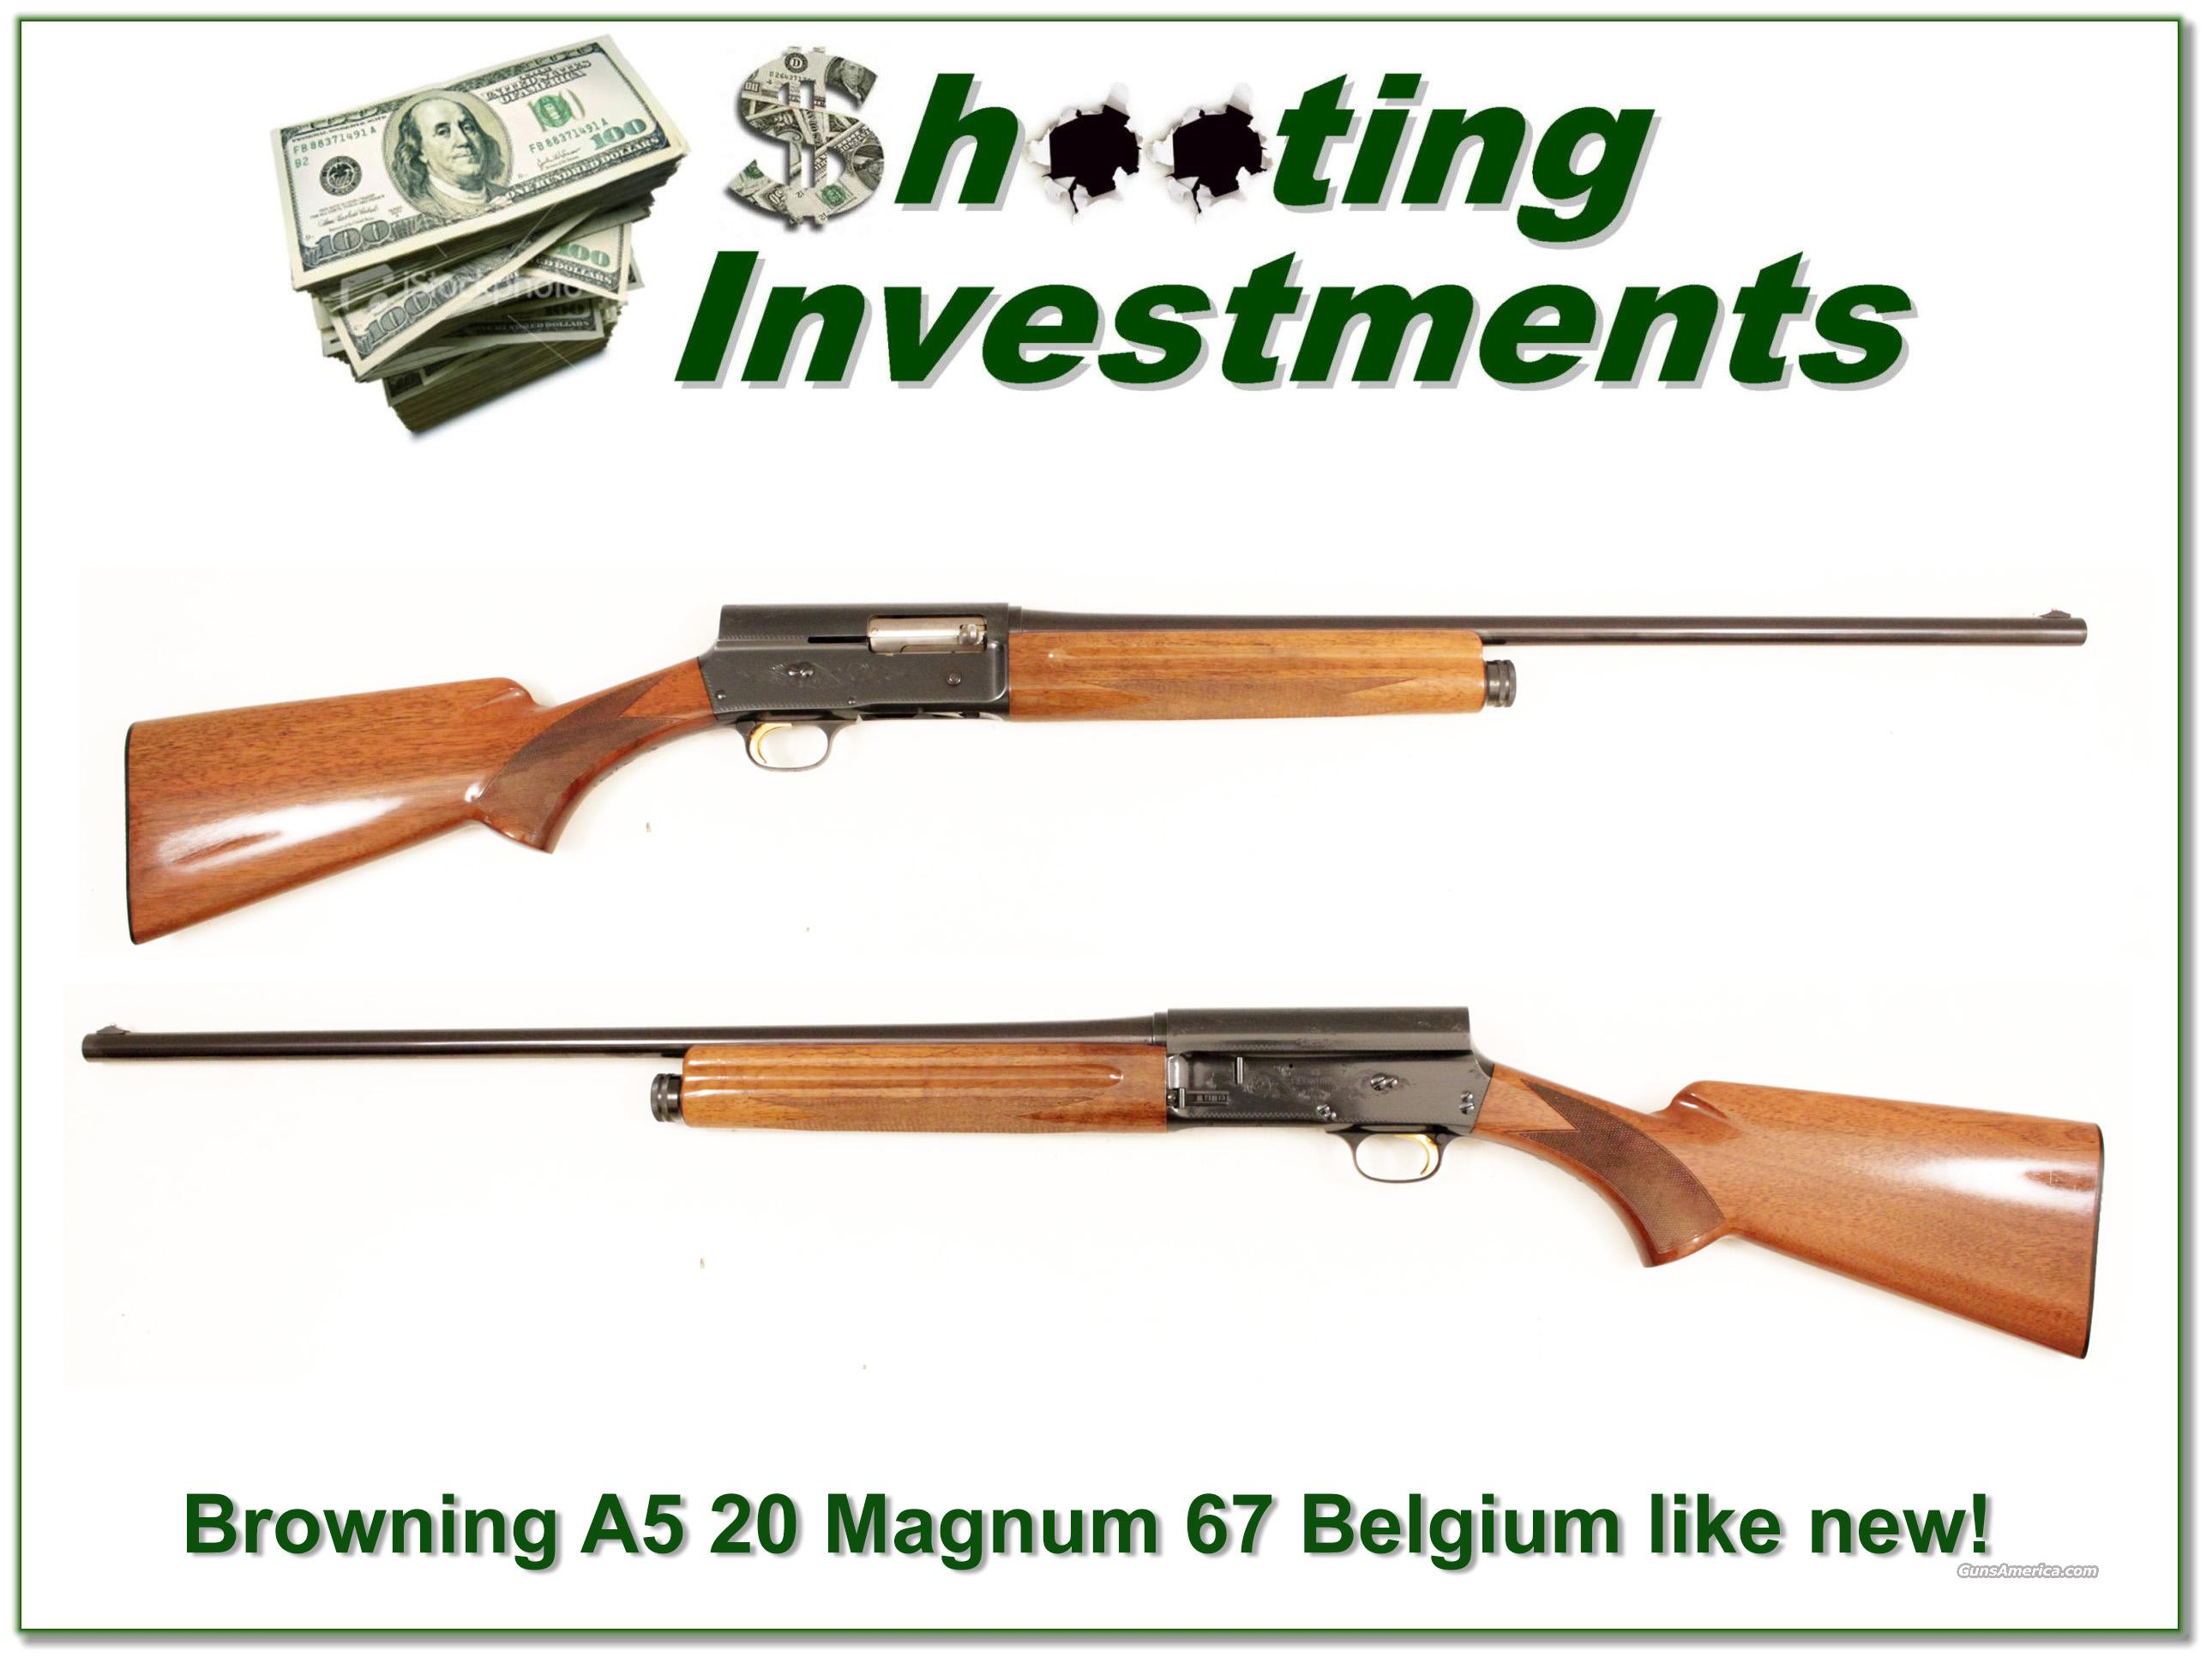 Browning A5 20 gauges 67 Belgium near new!  Guns > Shotguns > Browning Shotguns > Autoloaders > Hunting